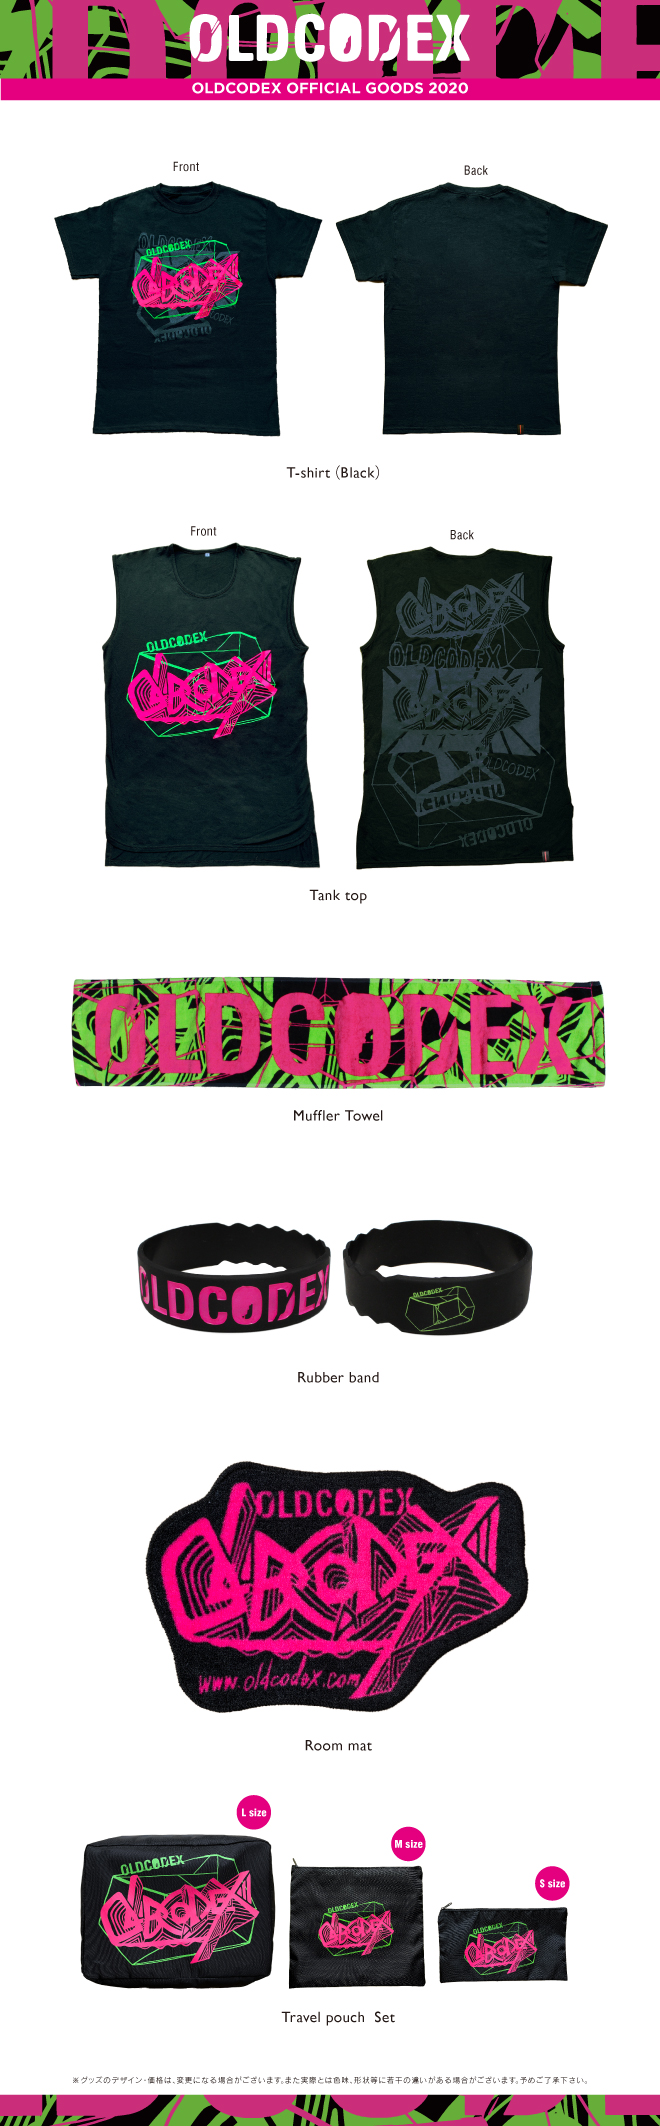 OLDCODEX OFFICIAL GOODS 2020